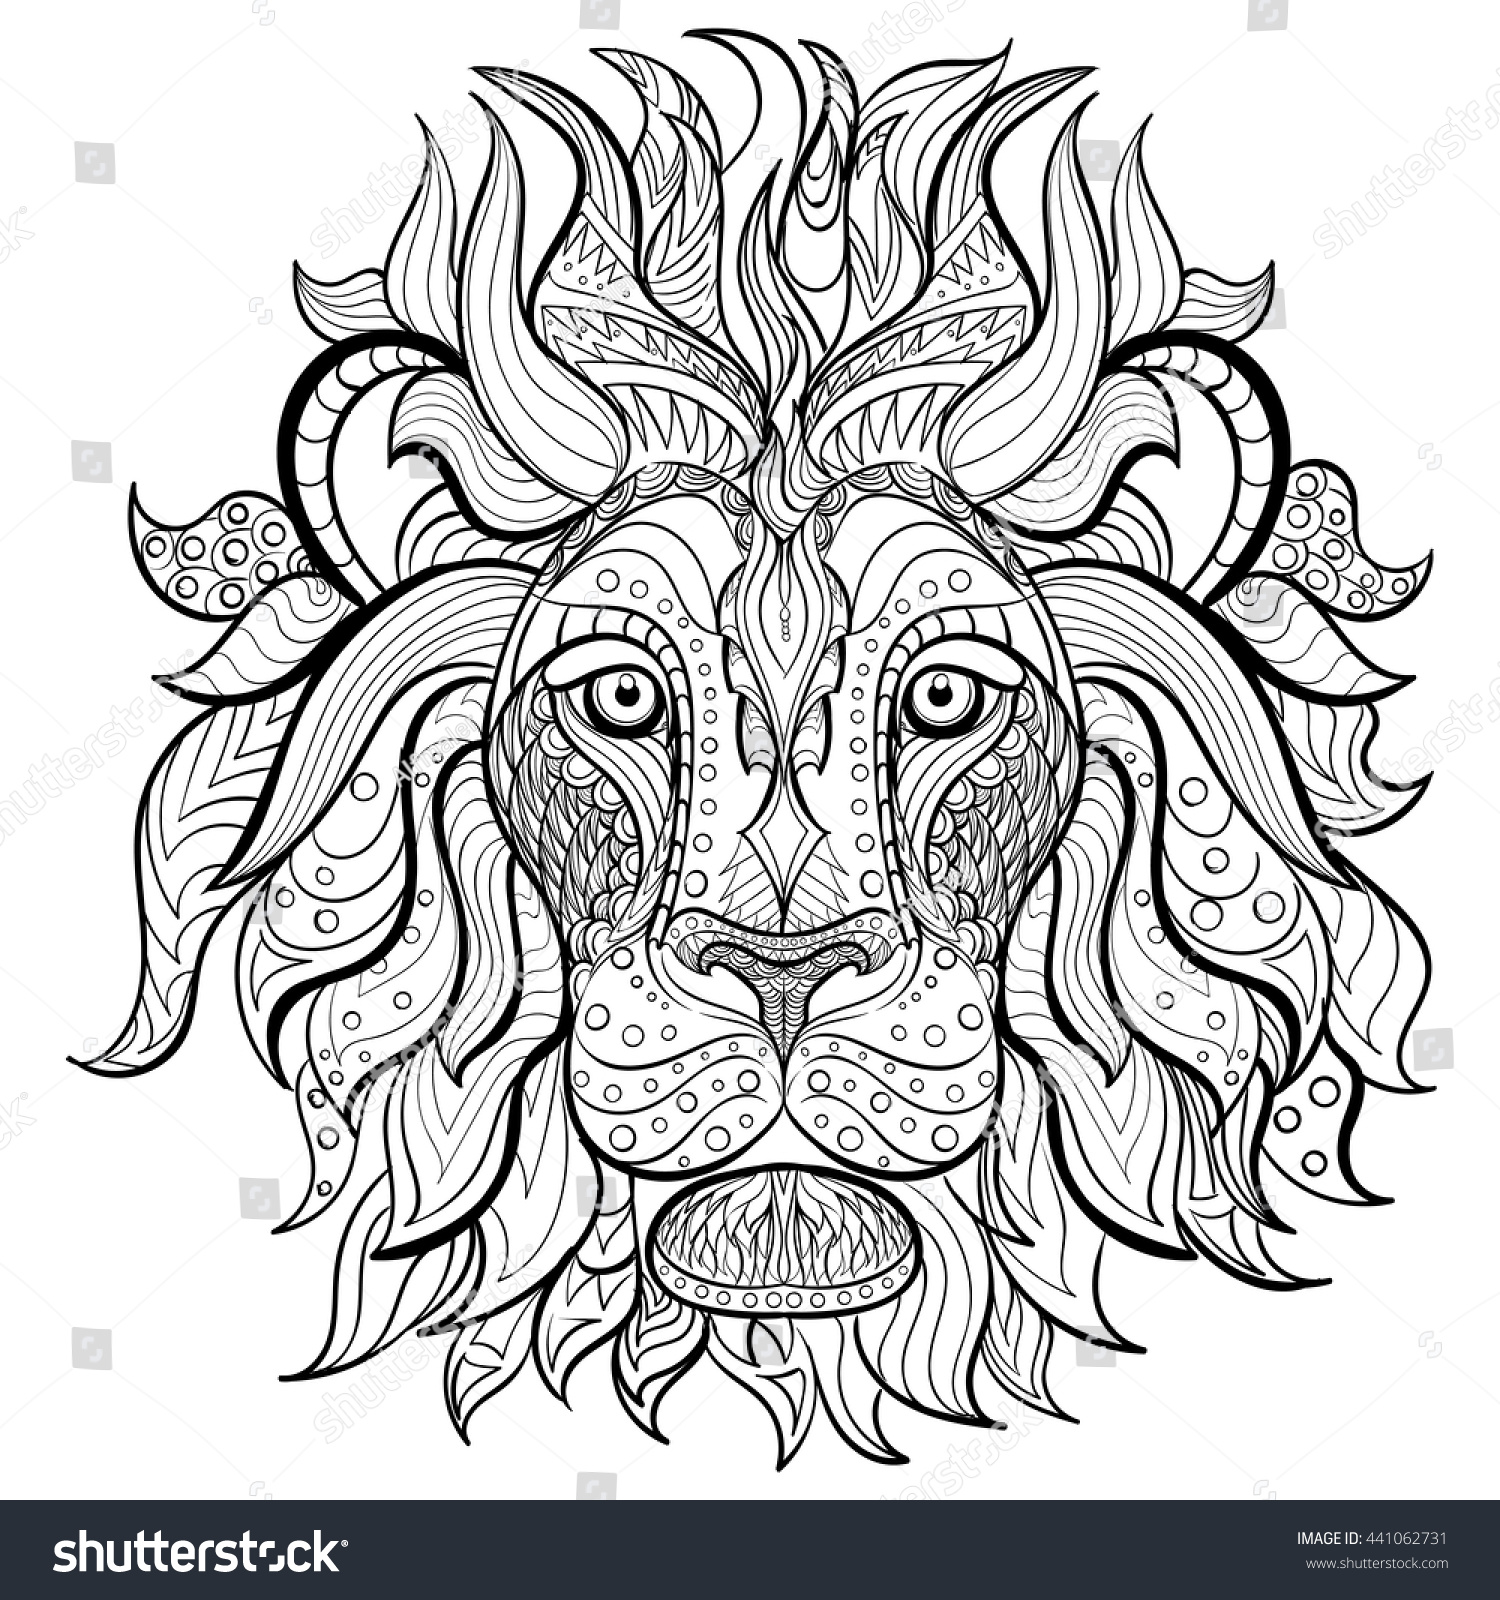 Coloring book for adults lion - Coloring Book For Adult Lion Zentagle